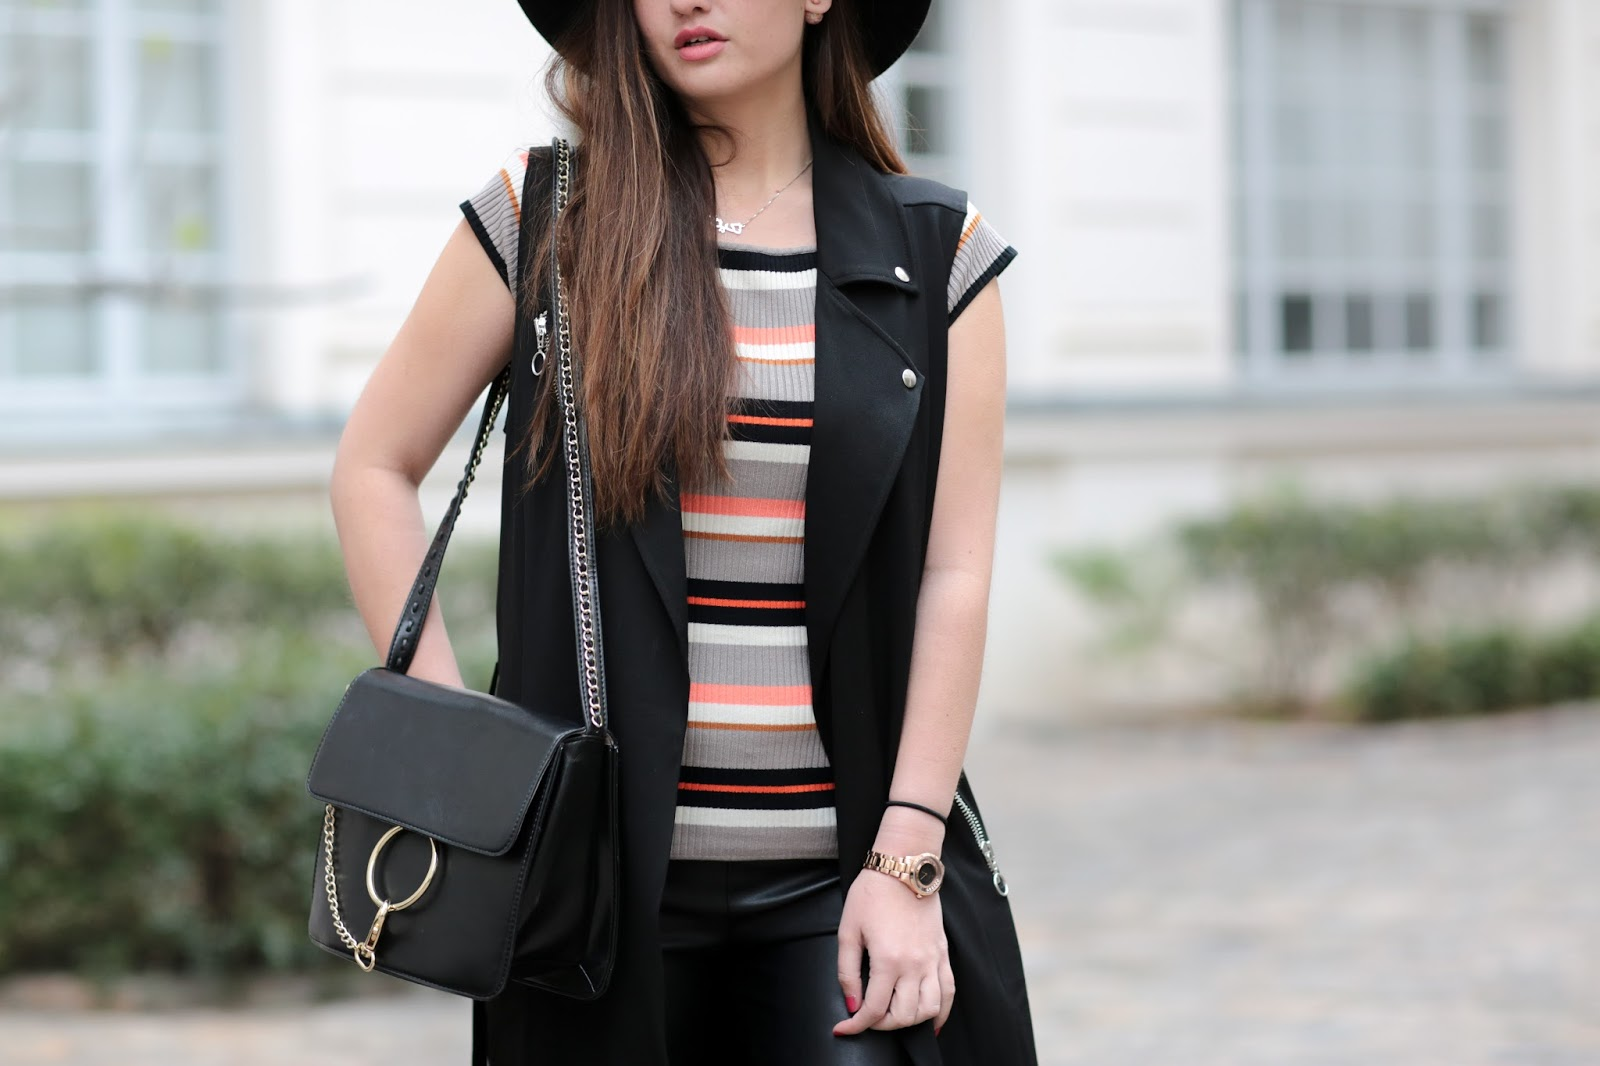 parisian fashion blogger, look, style, meetmeinparee, blogger, chic style, guess